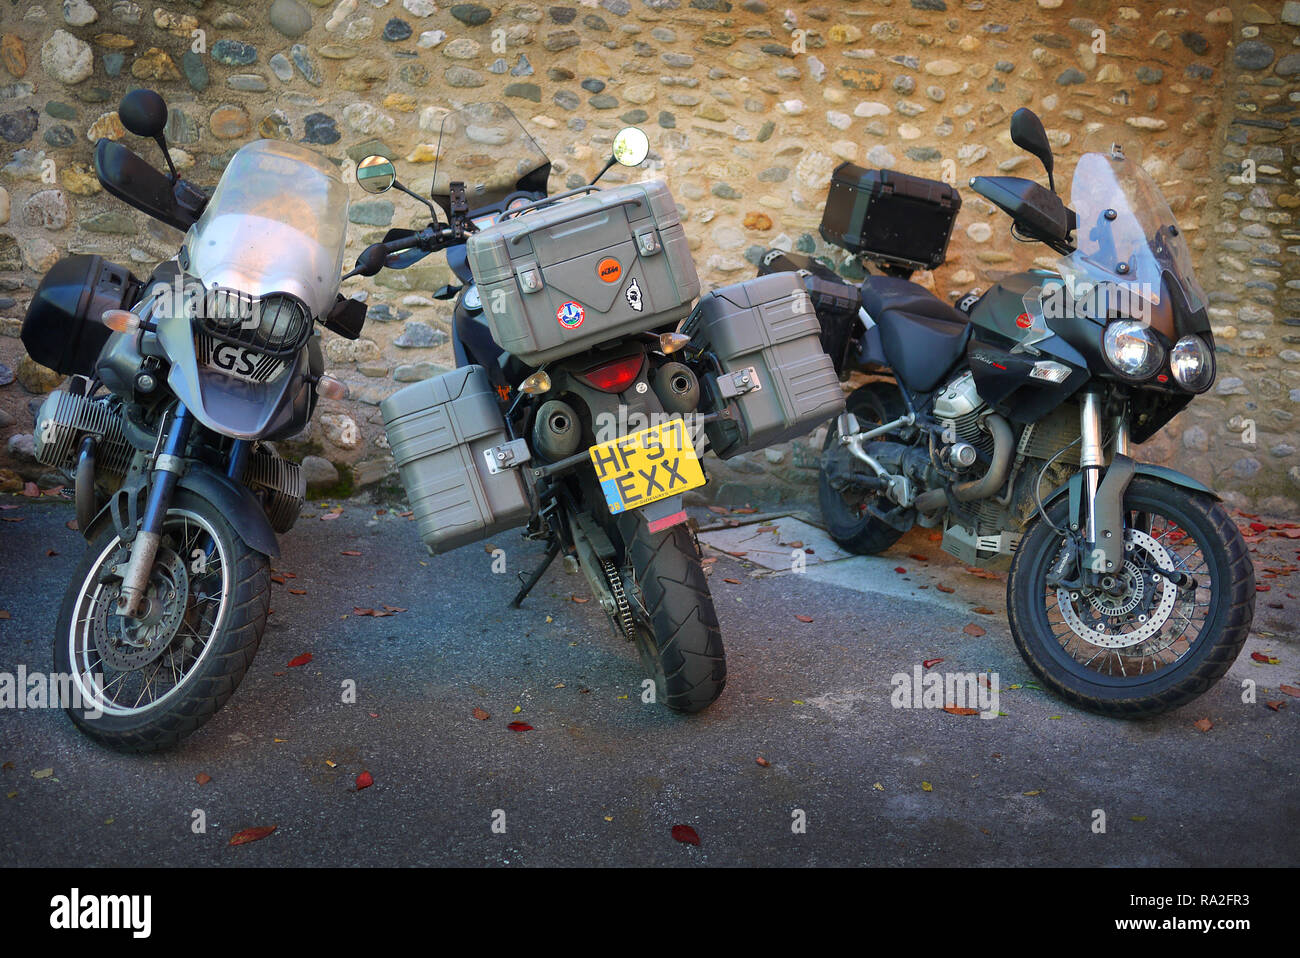 Adventure touring motorcycles, BMW, KTM and Moto Guzzi, Granada, Spain. - Stock Image